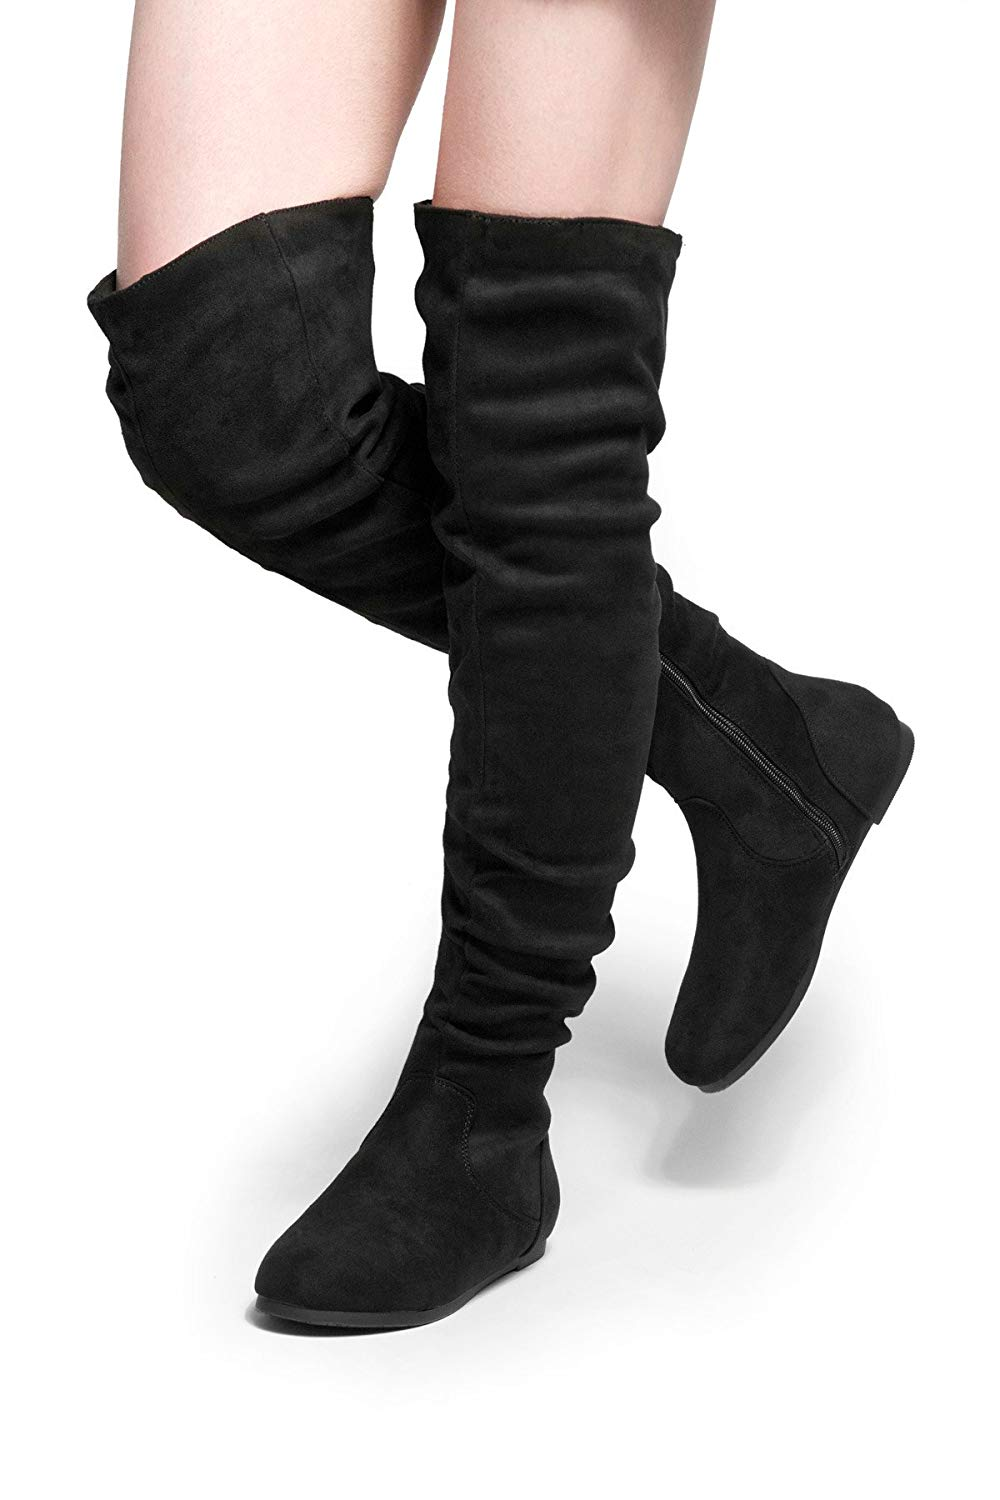 dd816cedcf6c Get Quotations · Herstyle Women s Odessa Over-the-Knee Thigh High Flat  Slouchly Shaft Low Heel Boots